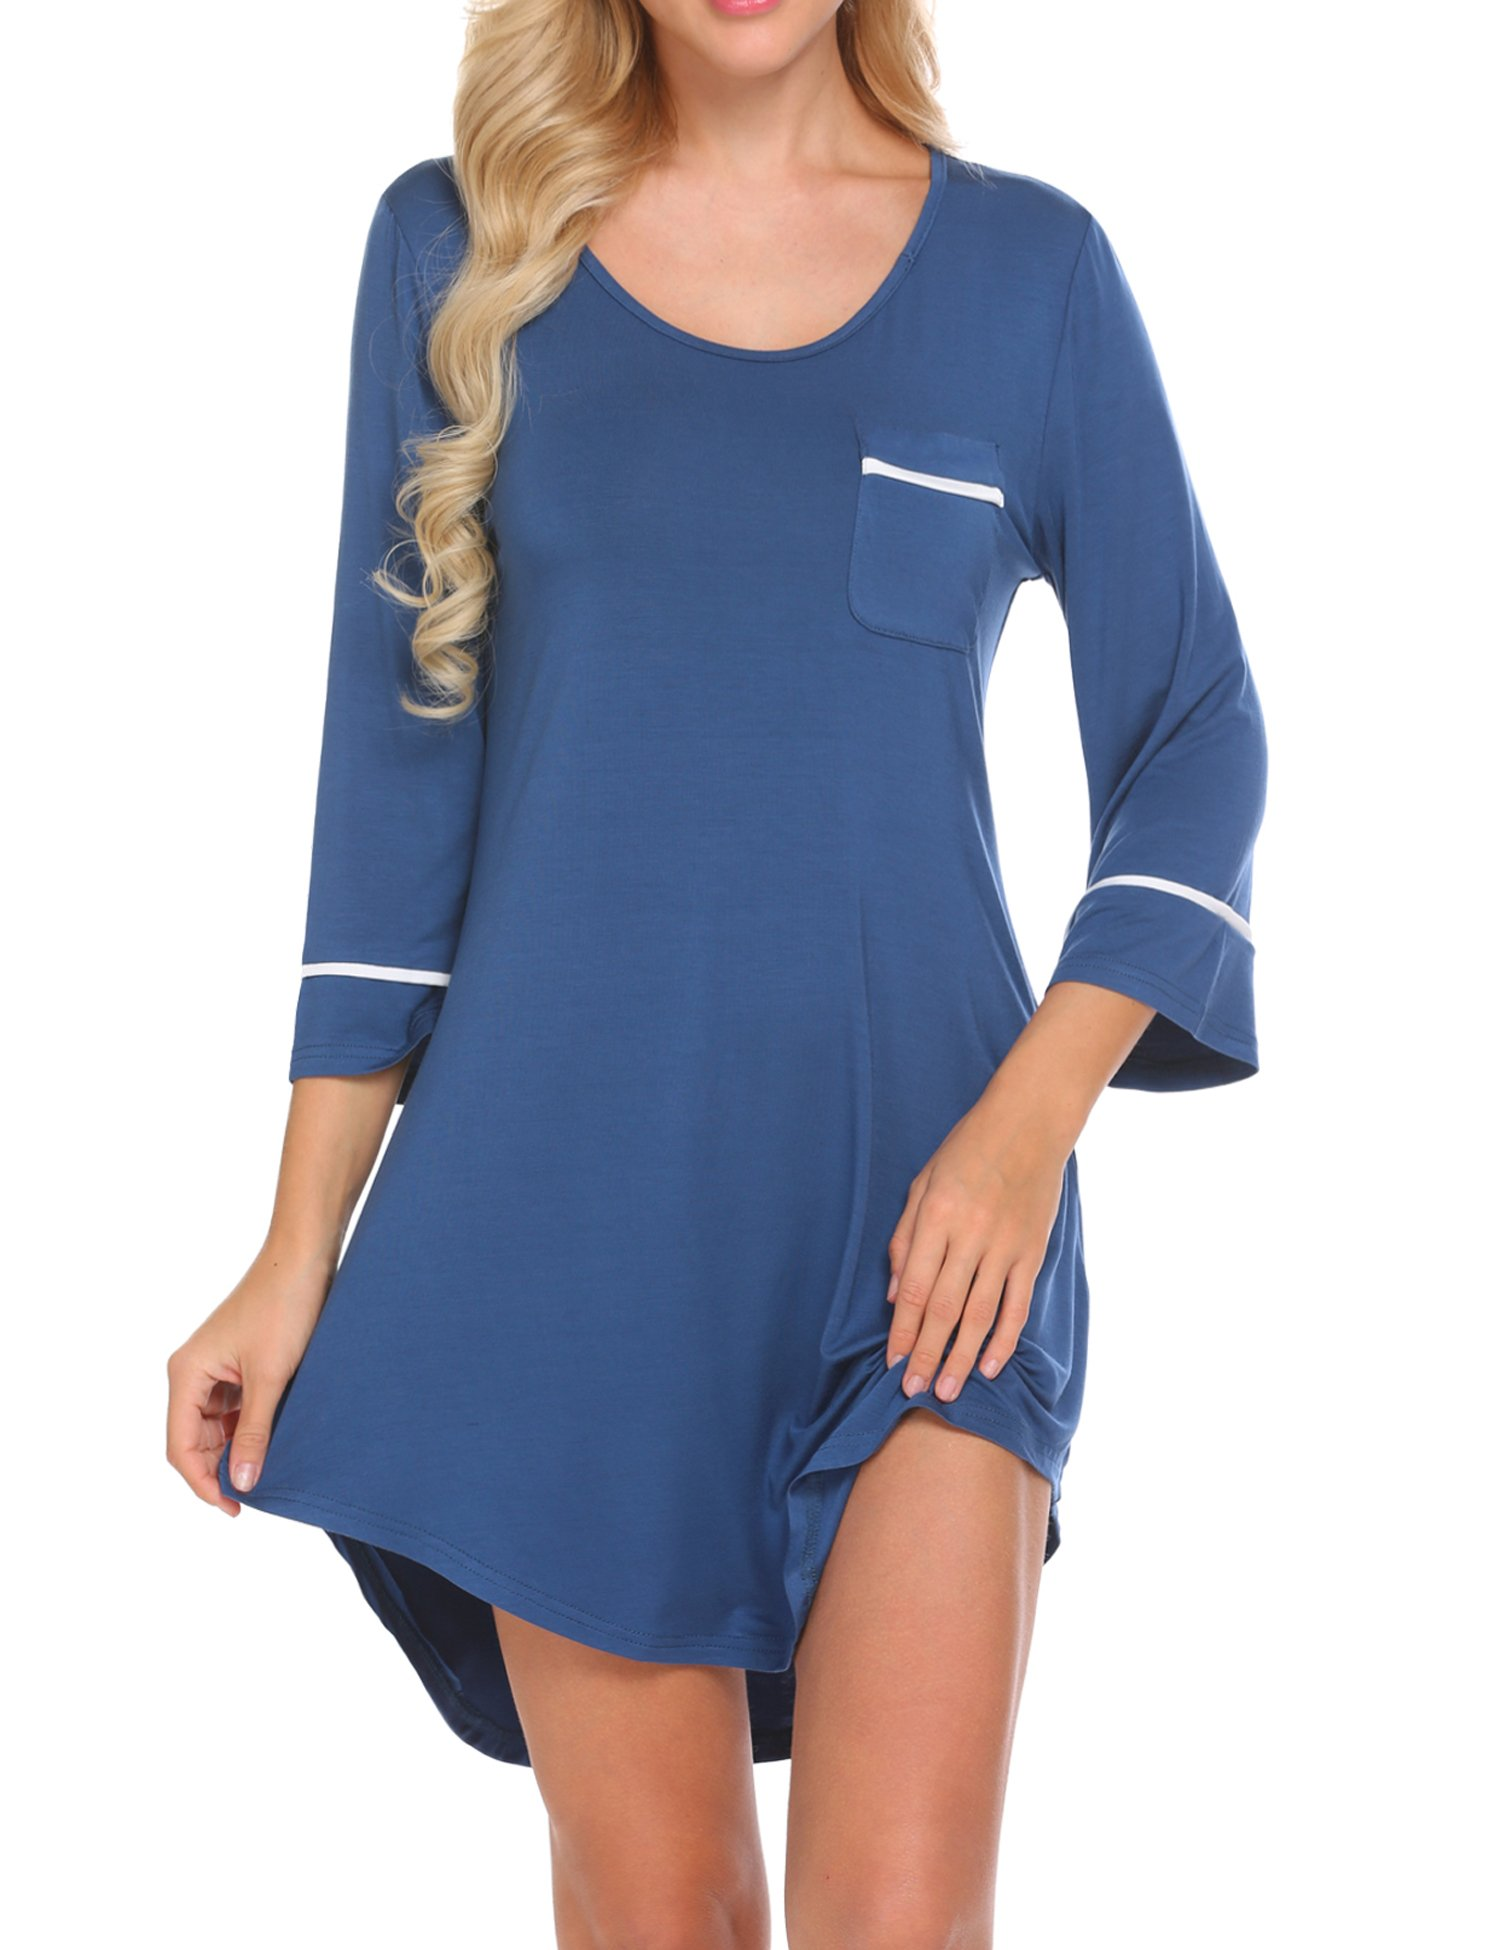 Ekouaer Women's Sleepshirt 3/4 Sleeves Nightgown Sexy Nightshirts Boyfriend Sleepwear S-XXL